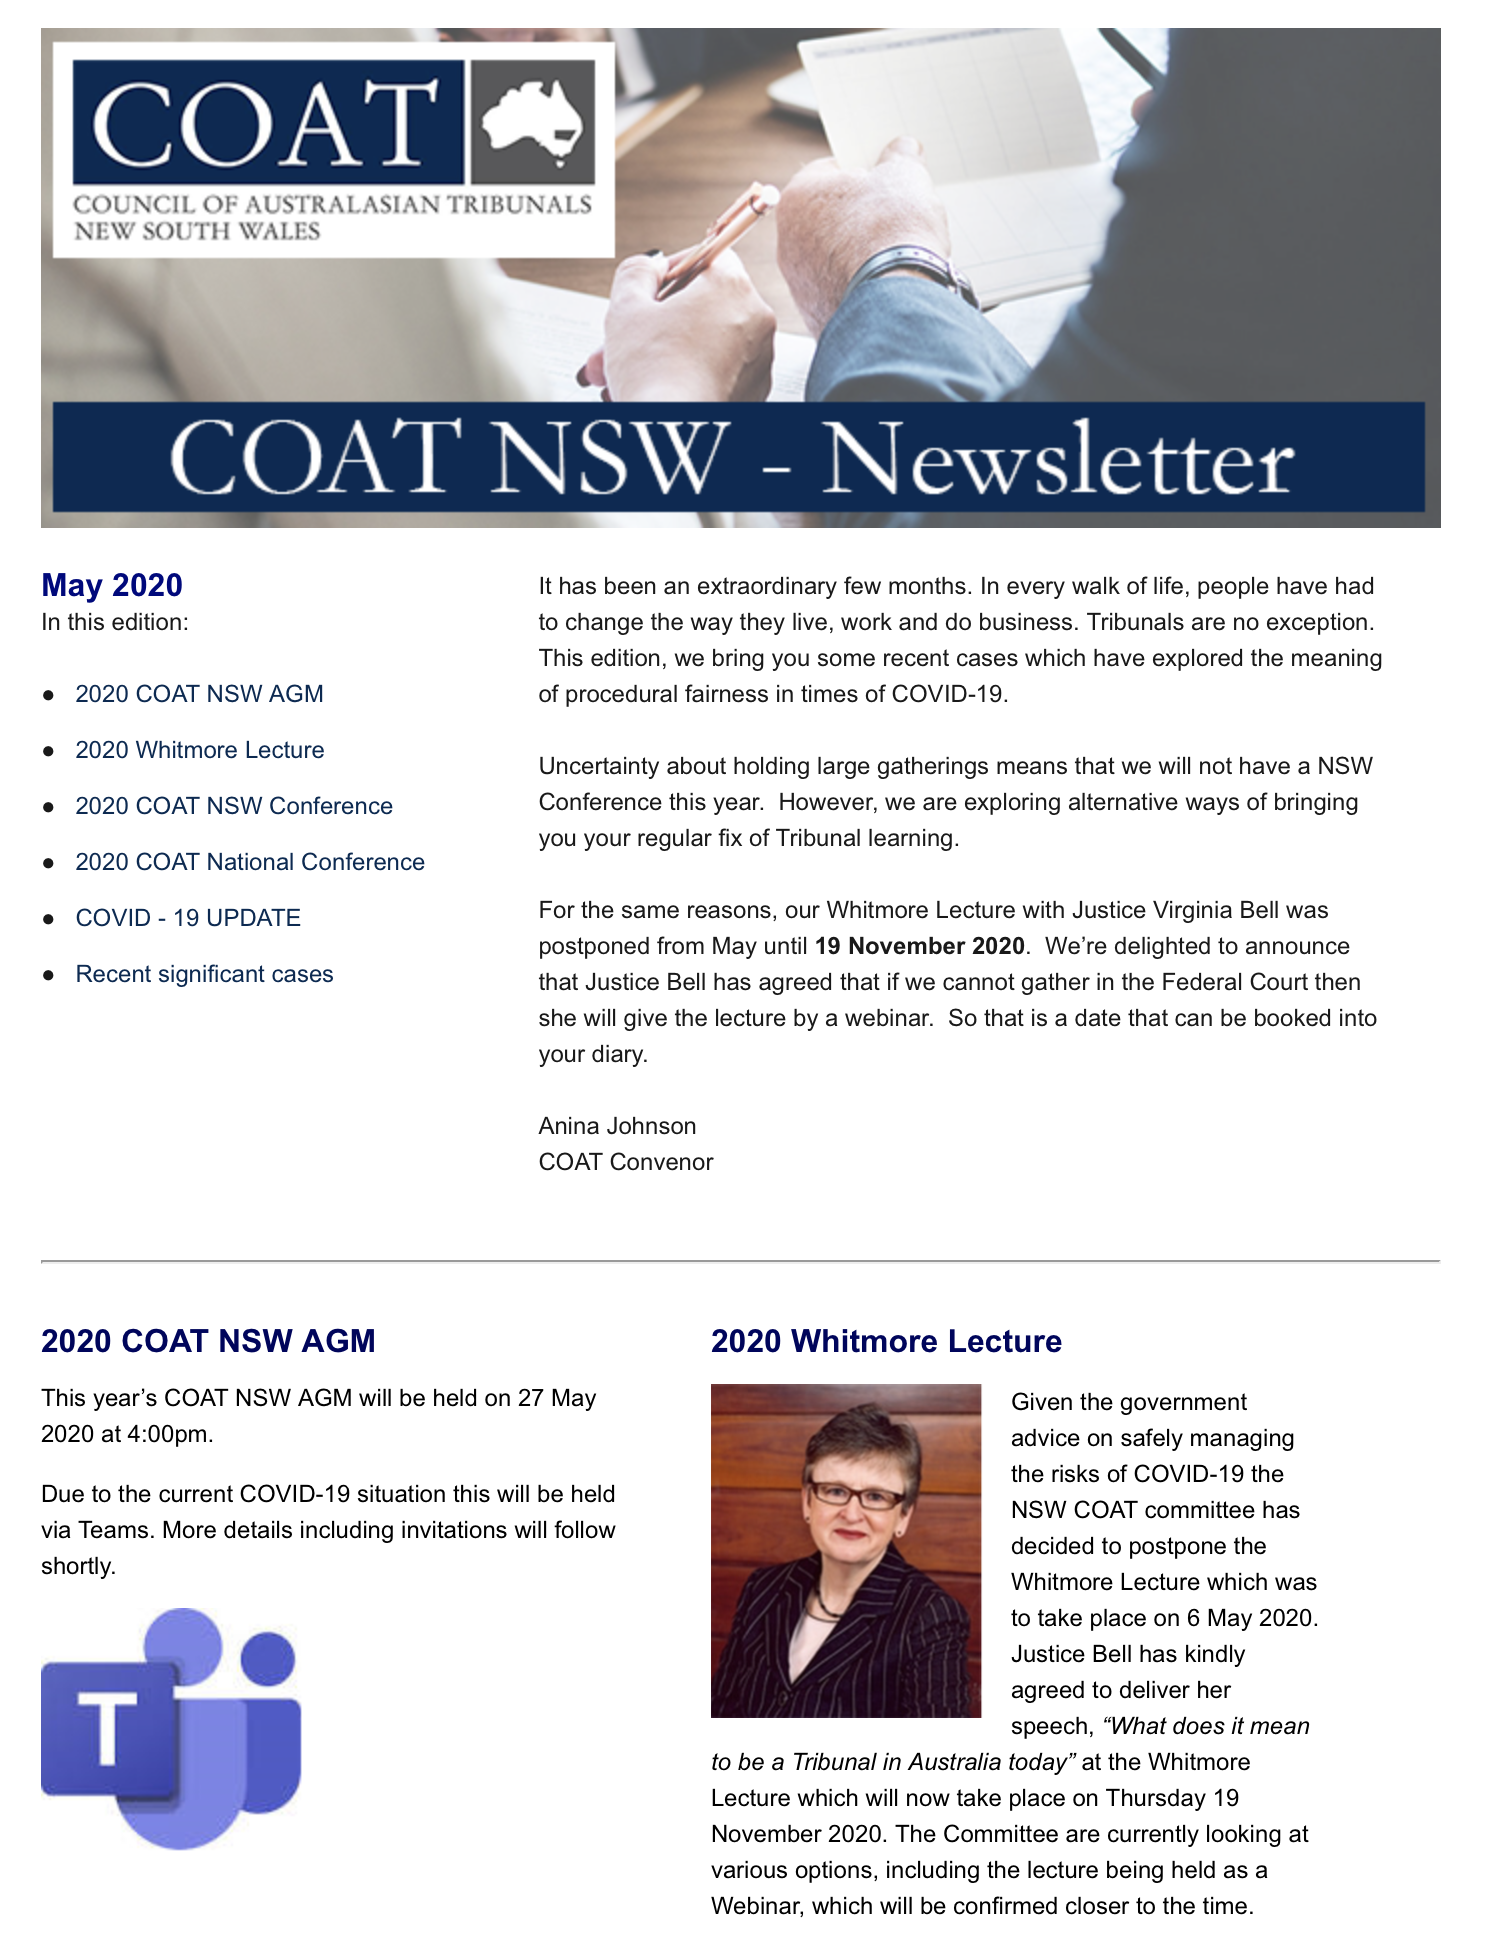 COAT NSW NEWSLETTER - MAY 2020